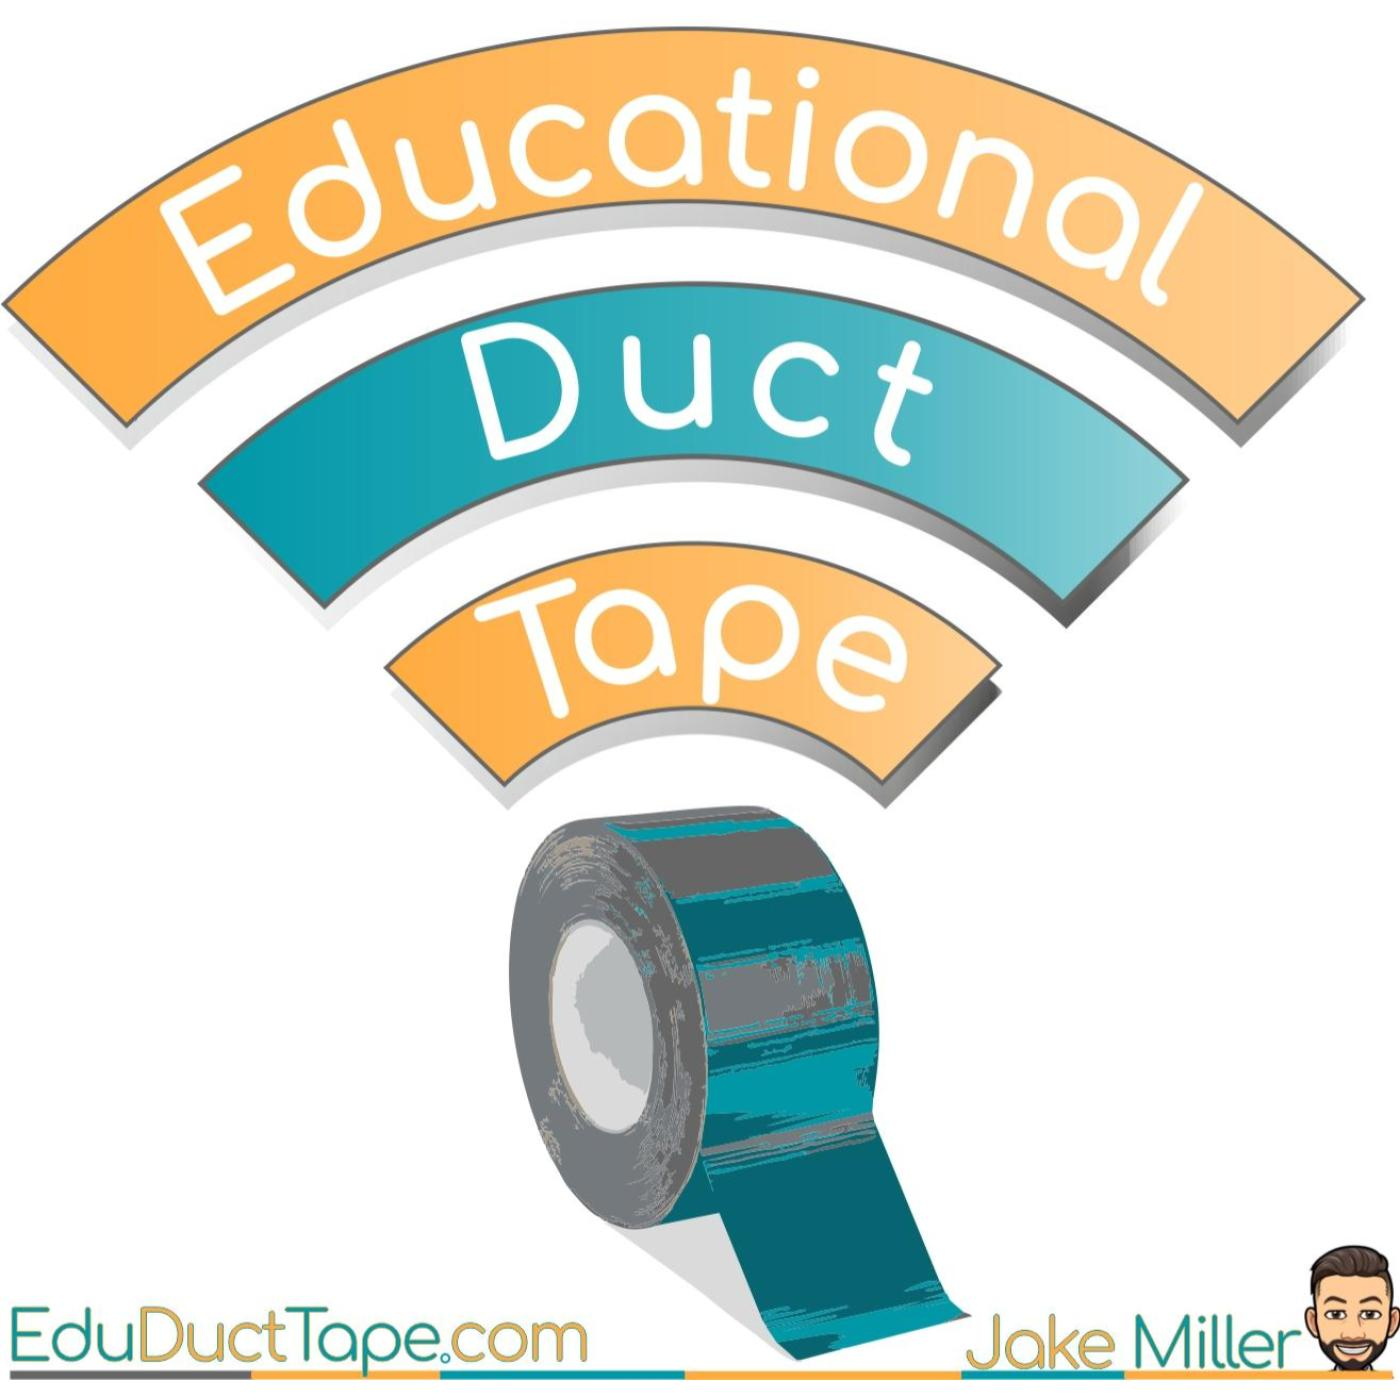 Educational Duct Tape show art